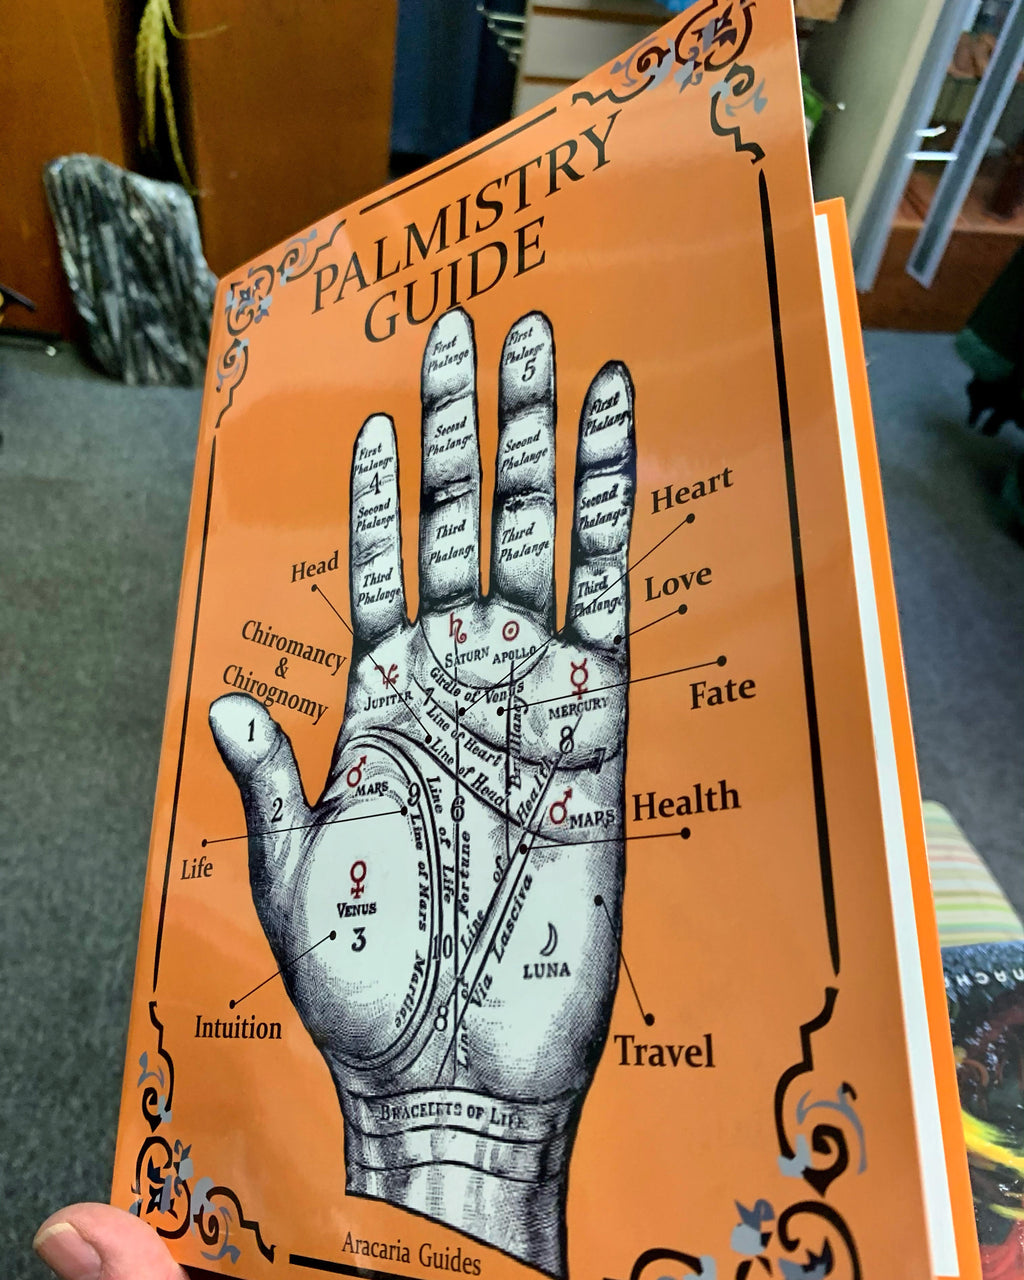 Palmistry Guide - BY STEFAN MAGER